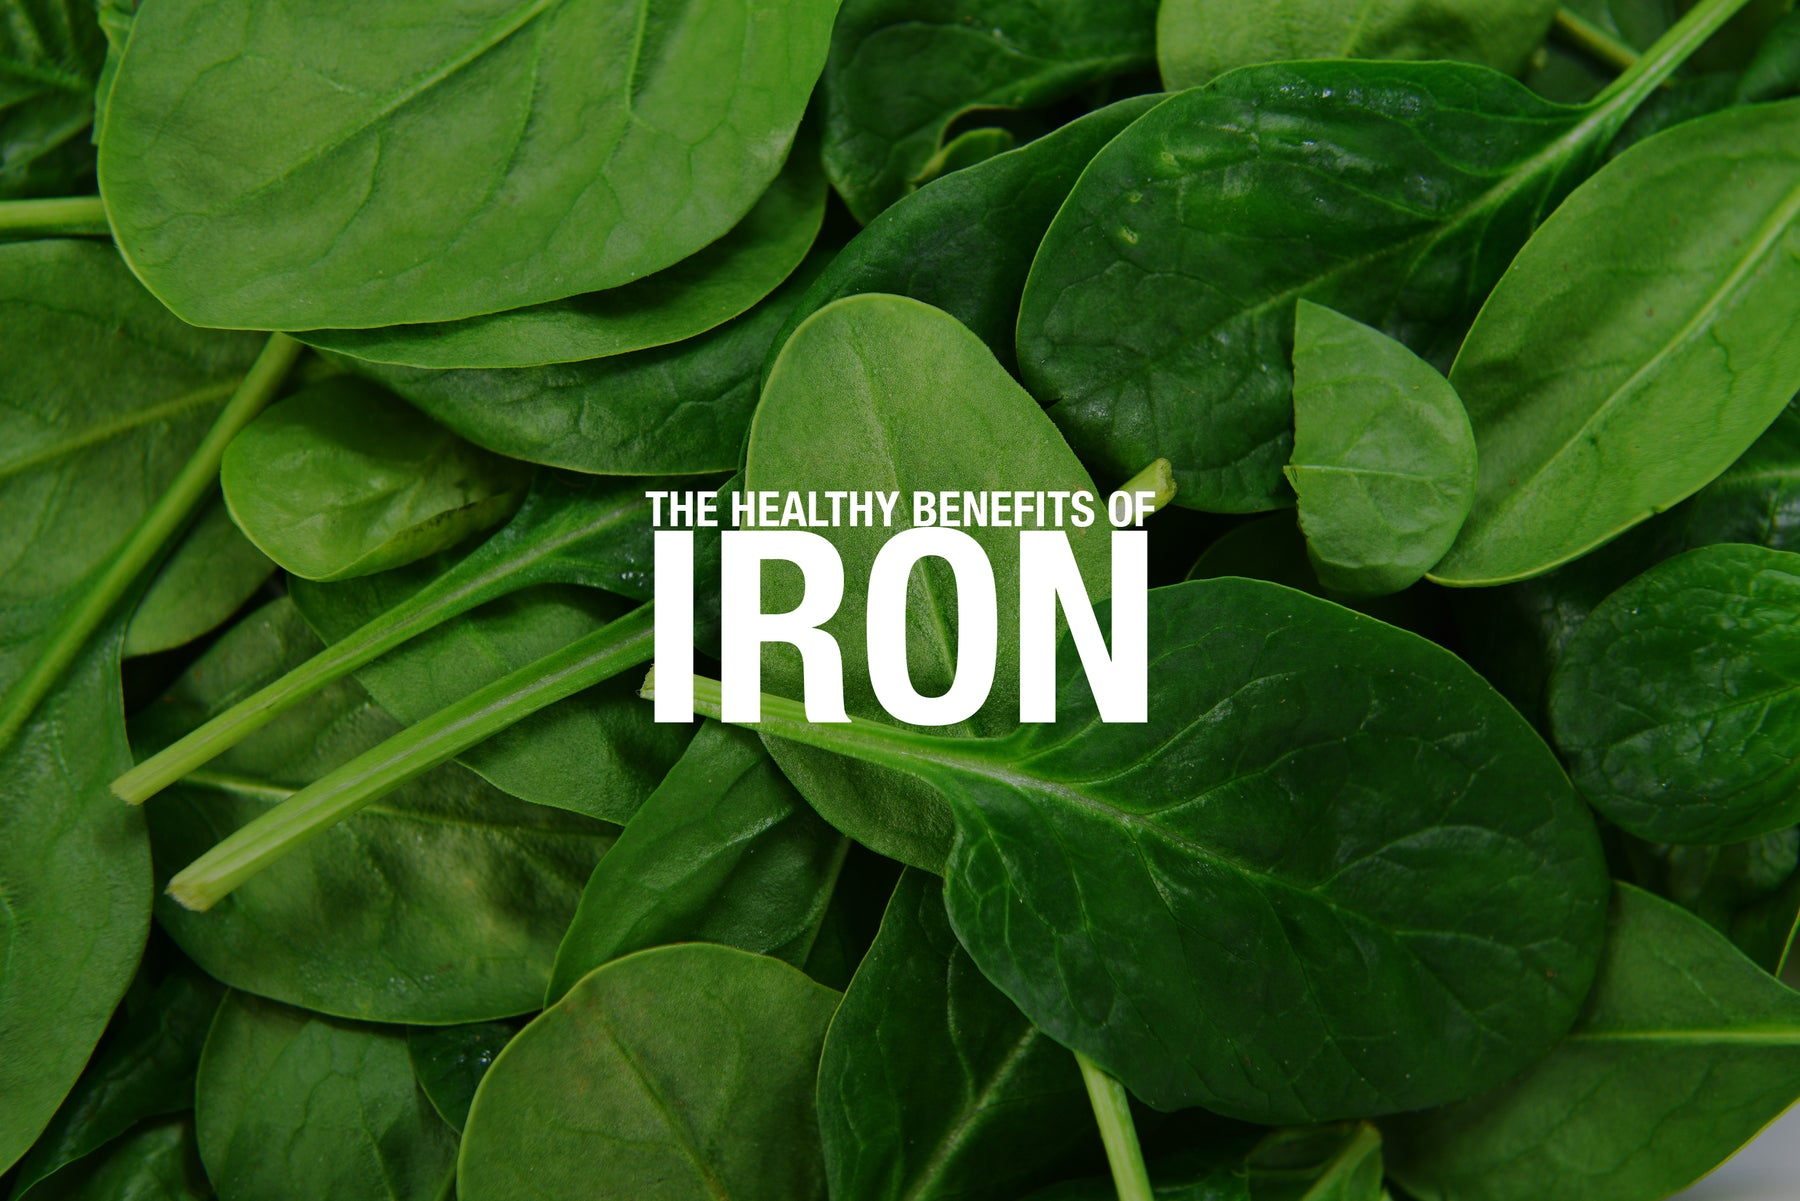 The Healthy Benefits of Iron